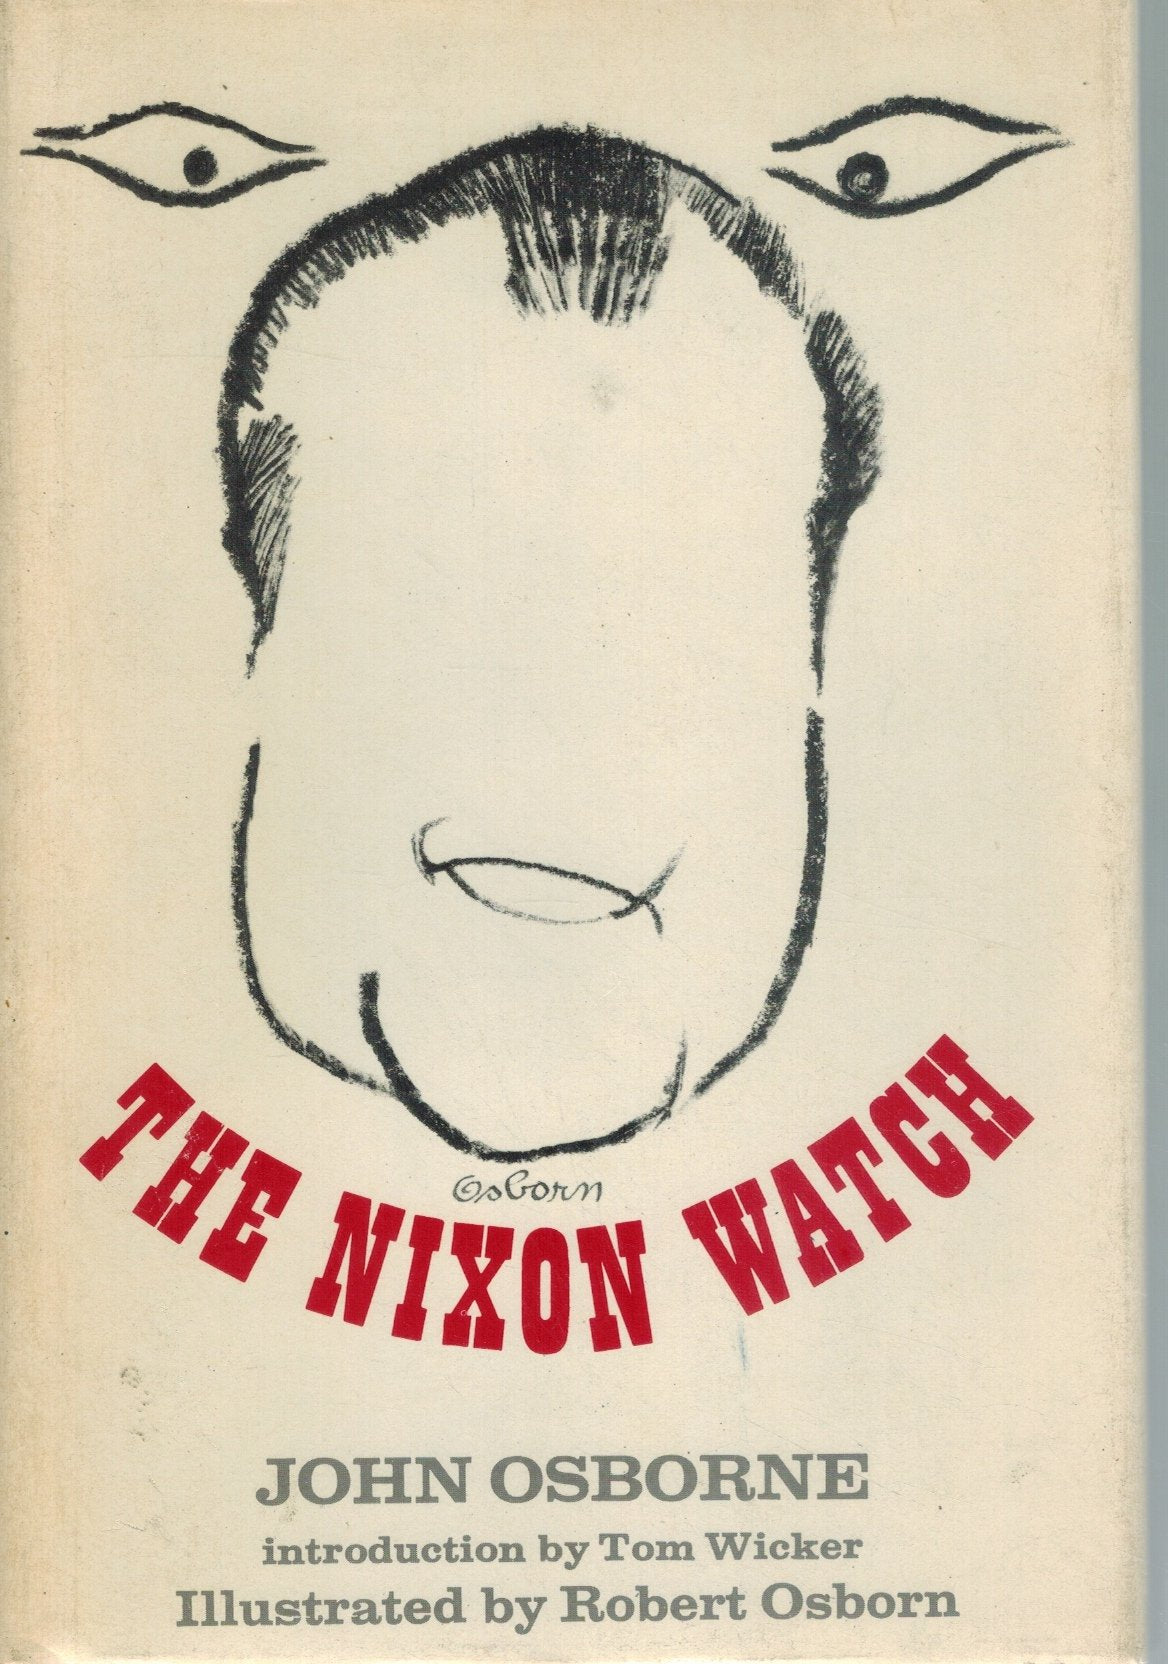 THE LAST NIXON WATCH  by Osborne, John